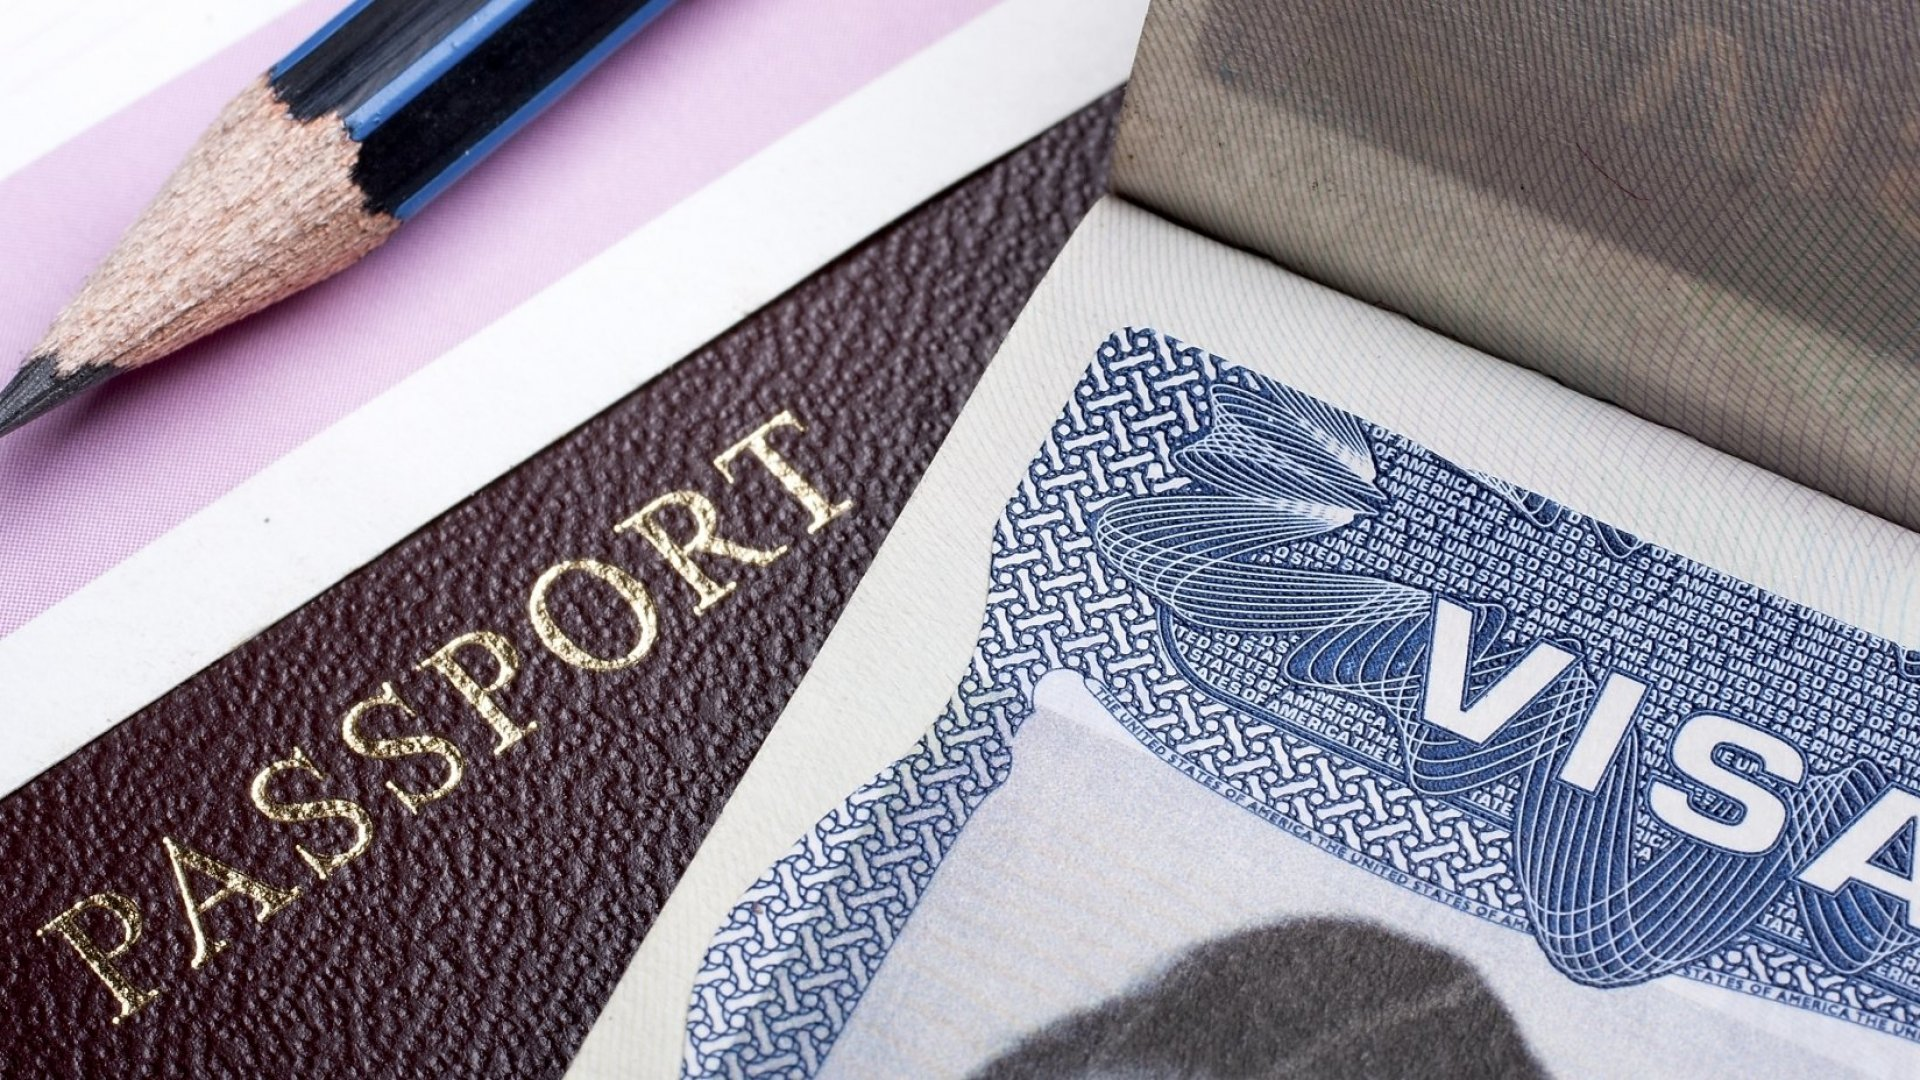 Trump Could Be Planning to Overhaul H-1B Visas, Causing Panic Among Tech CEOs